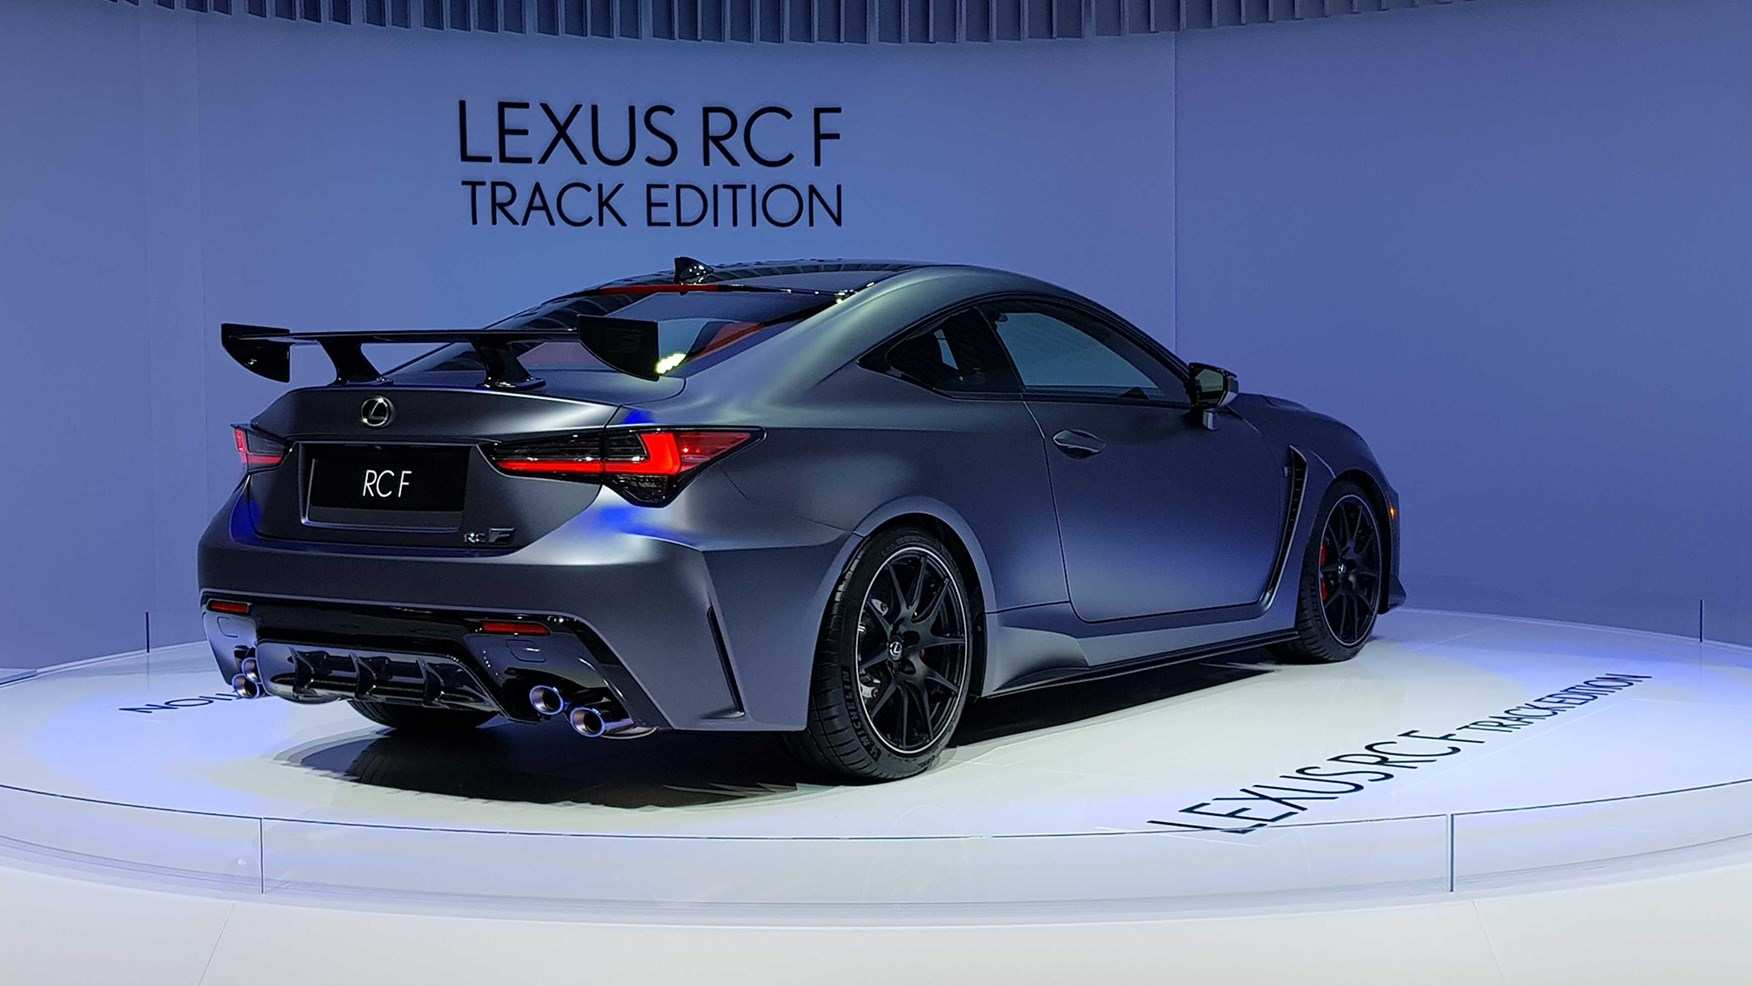 17 All New Rcf Lexus 2019 Photos